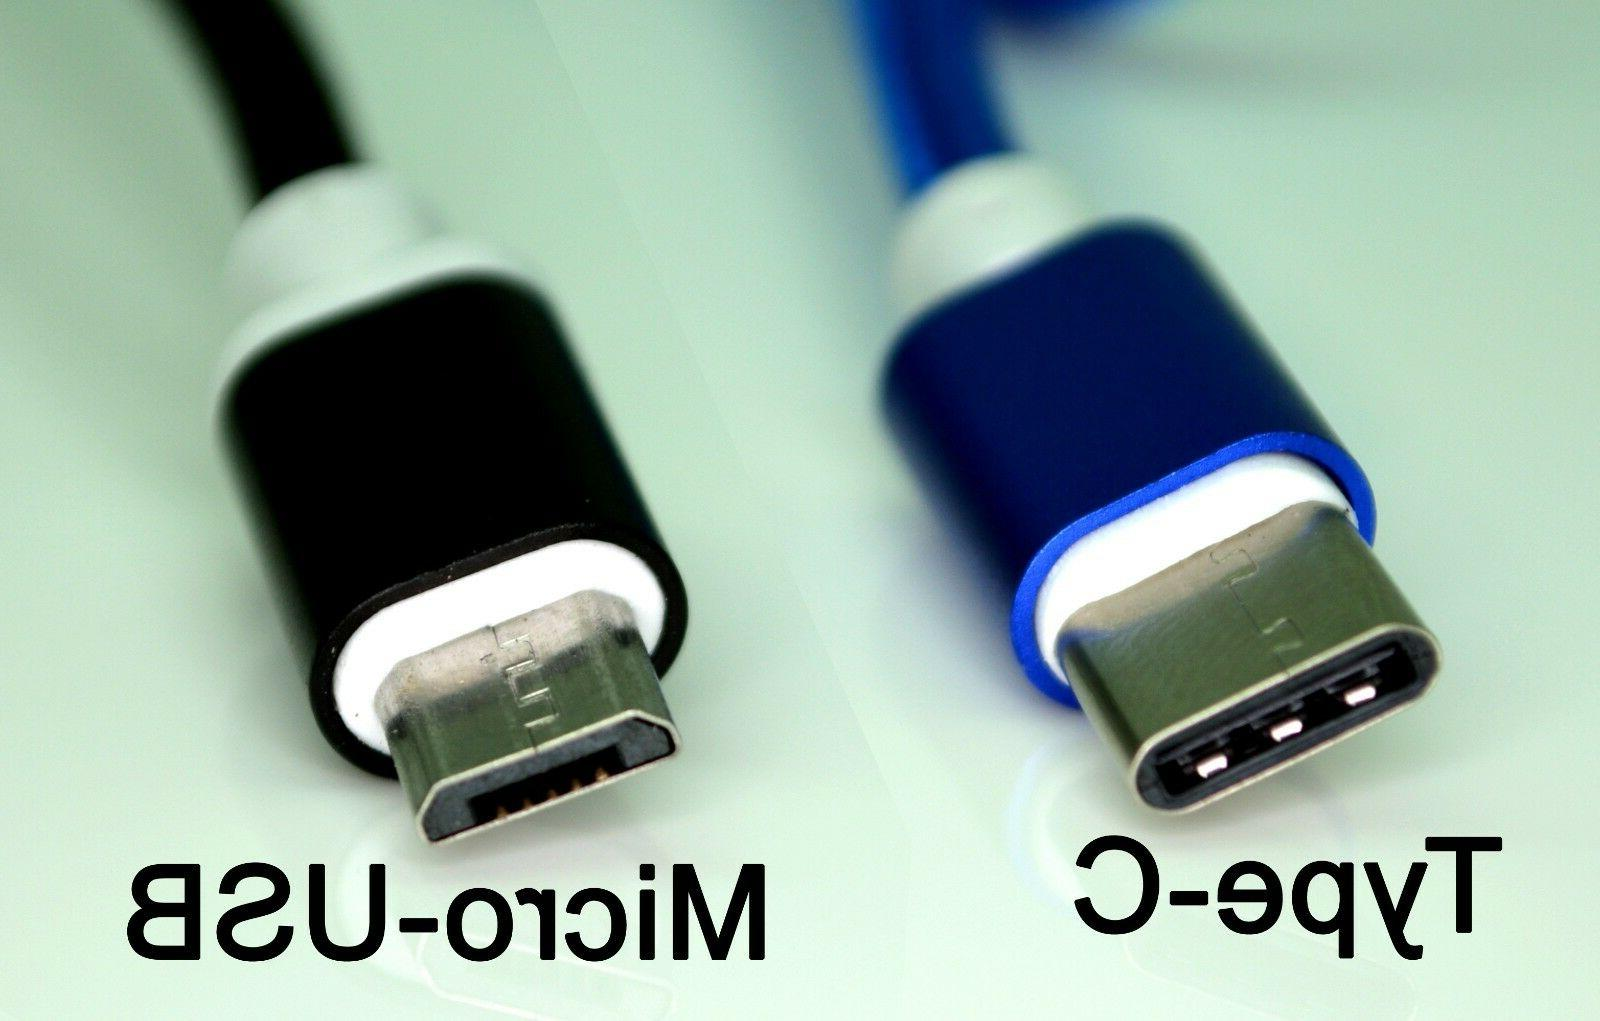 2 PACK USB Data Cable